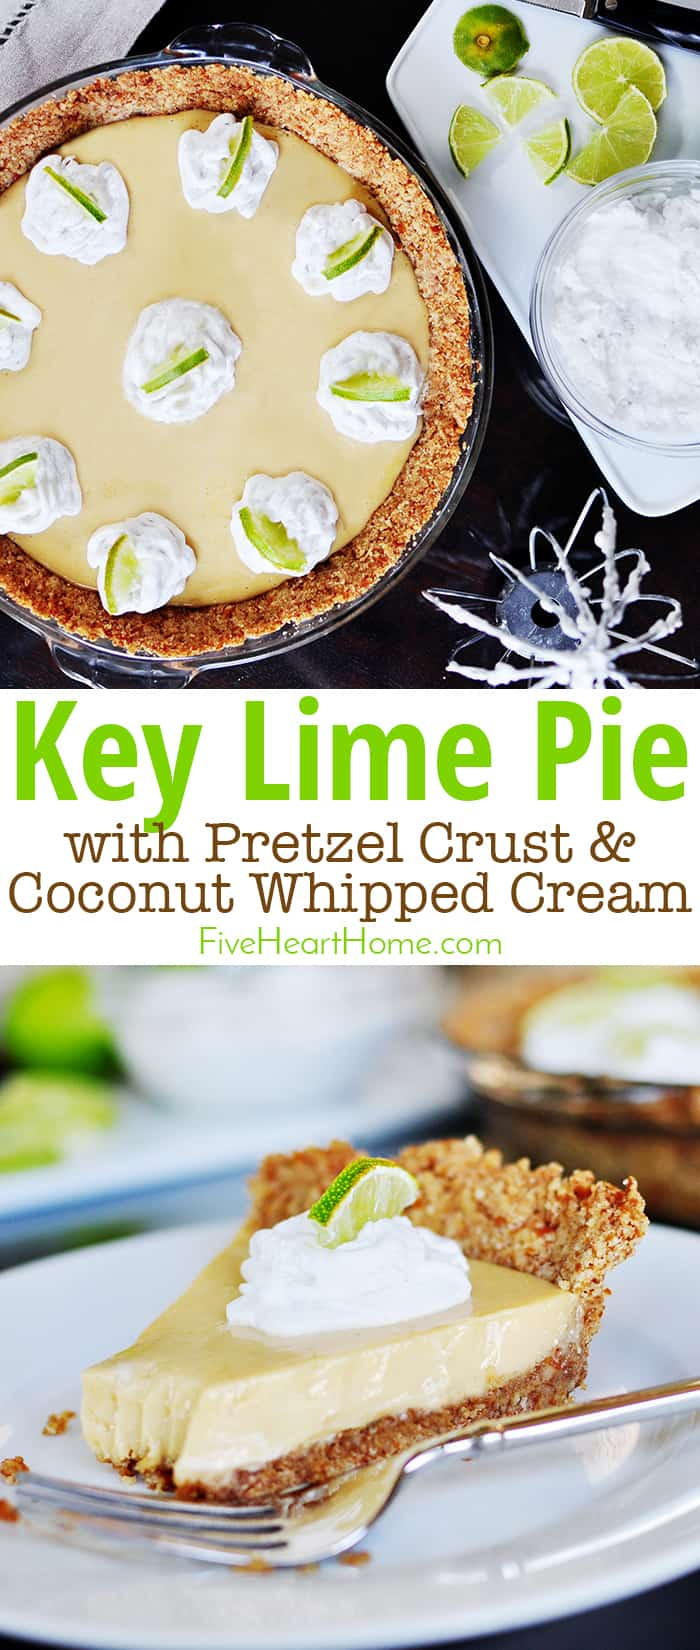 Key Lime Pie with Pretzel Crust & Coconut Whipped Cream, whole pie and slice on a plate